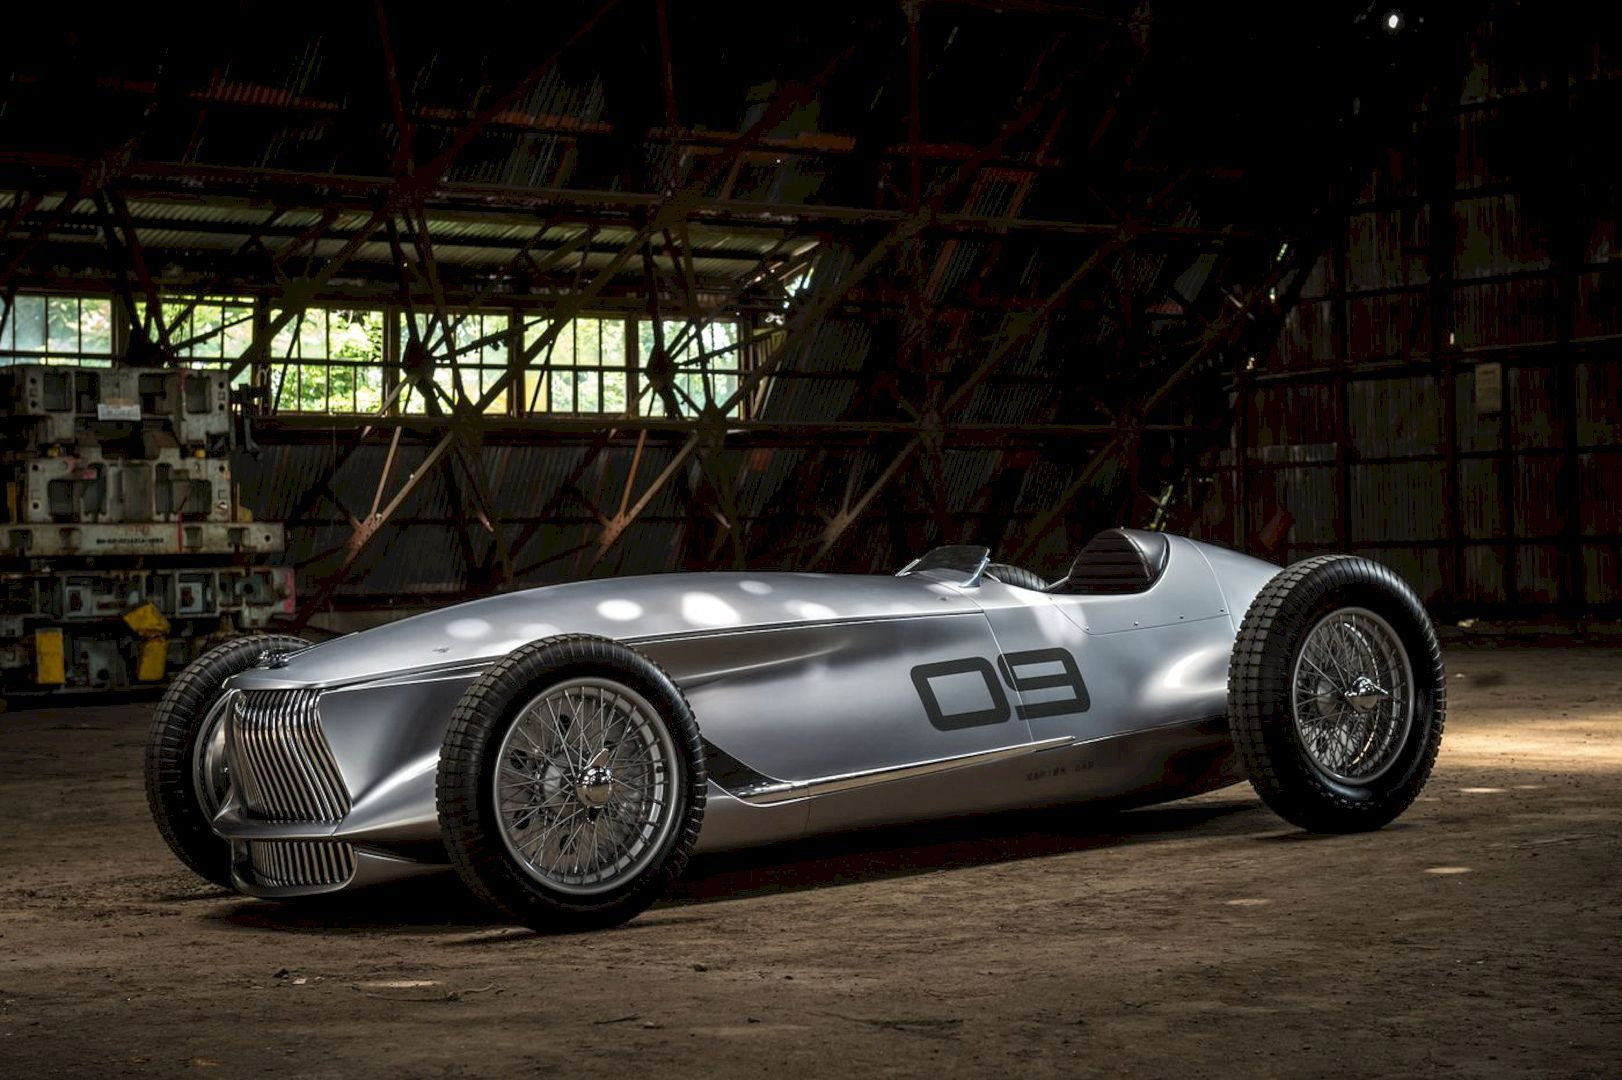 Infiniti Prototype 9 Concept The Old New Perspective In Retro Faced